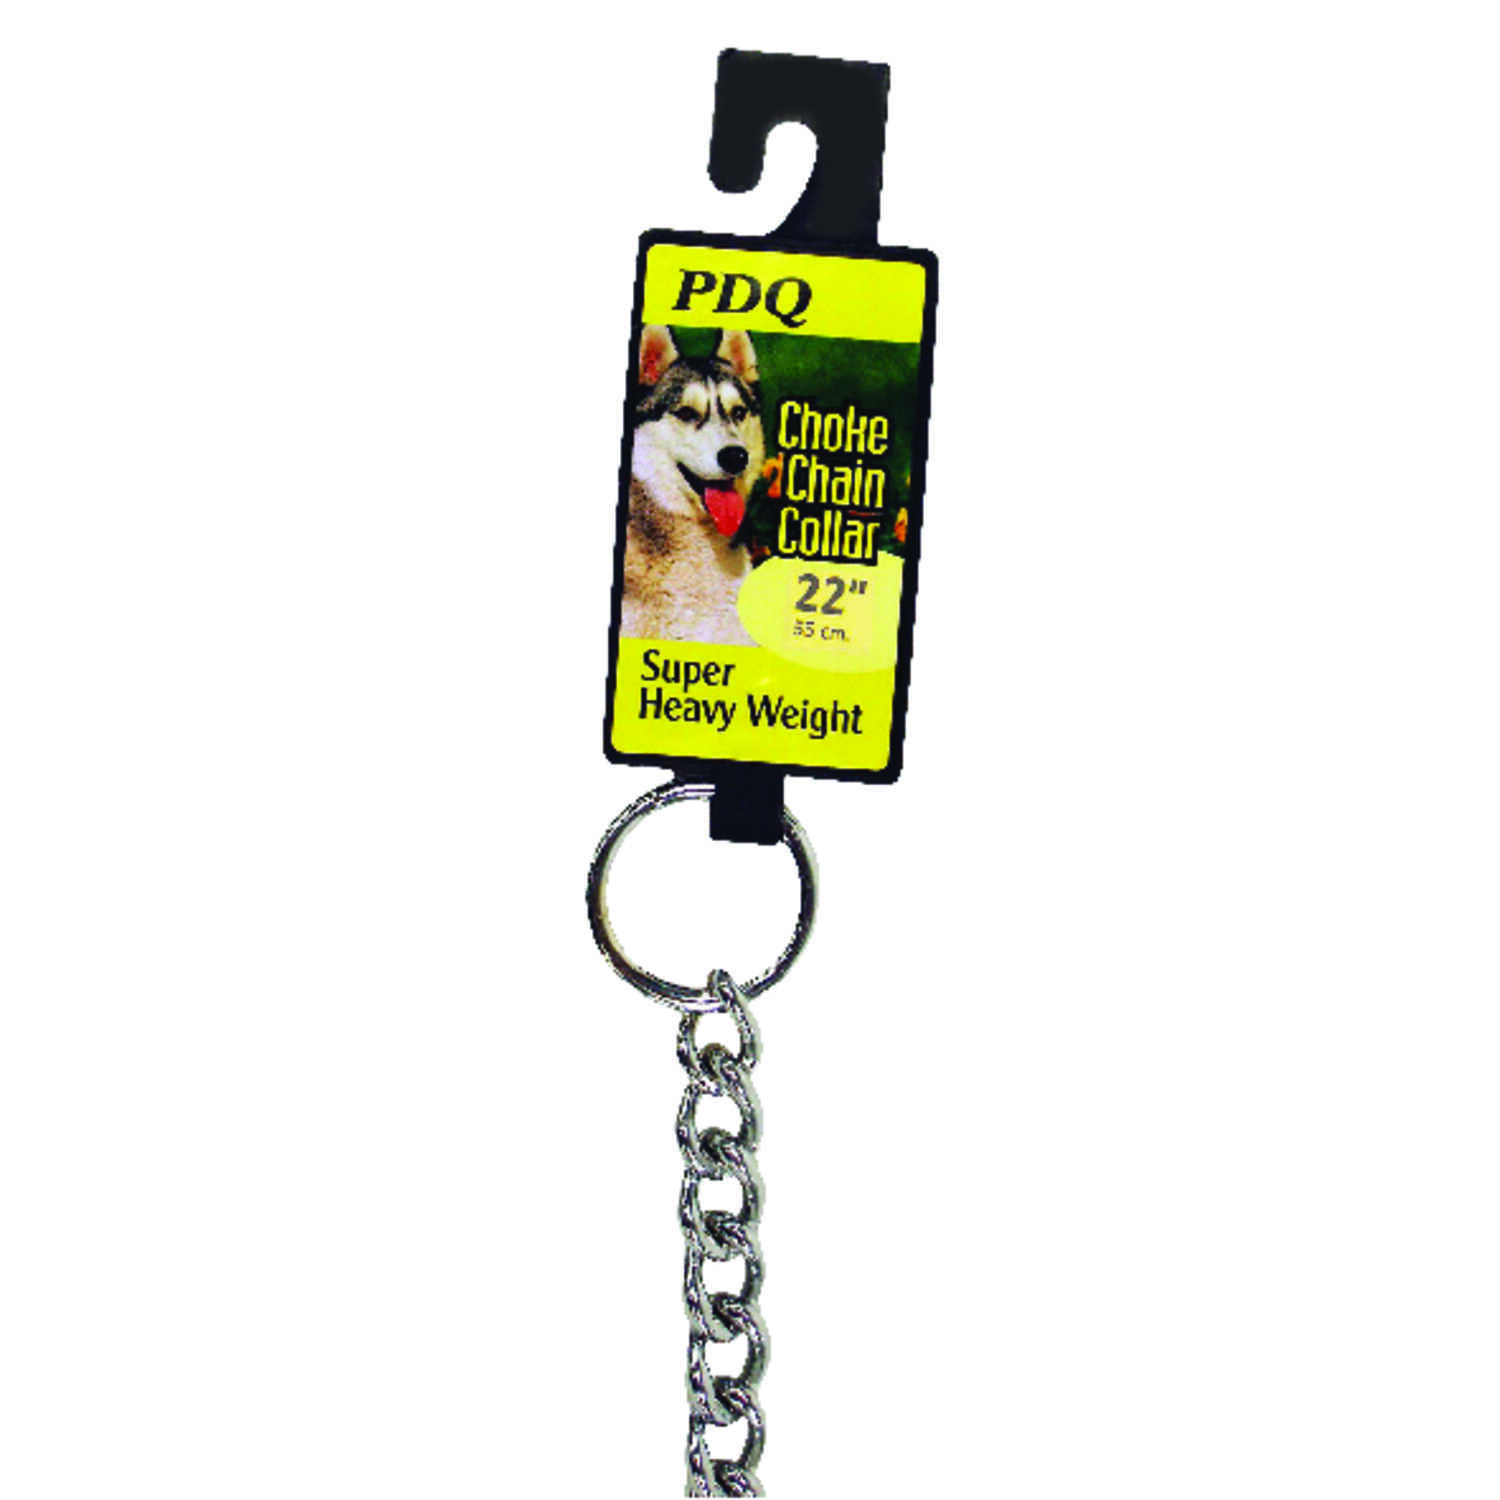 PDQ  Silver  Chain Collar  Steel  Dog  Collar  Large/X-Large